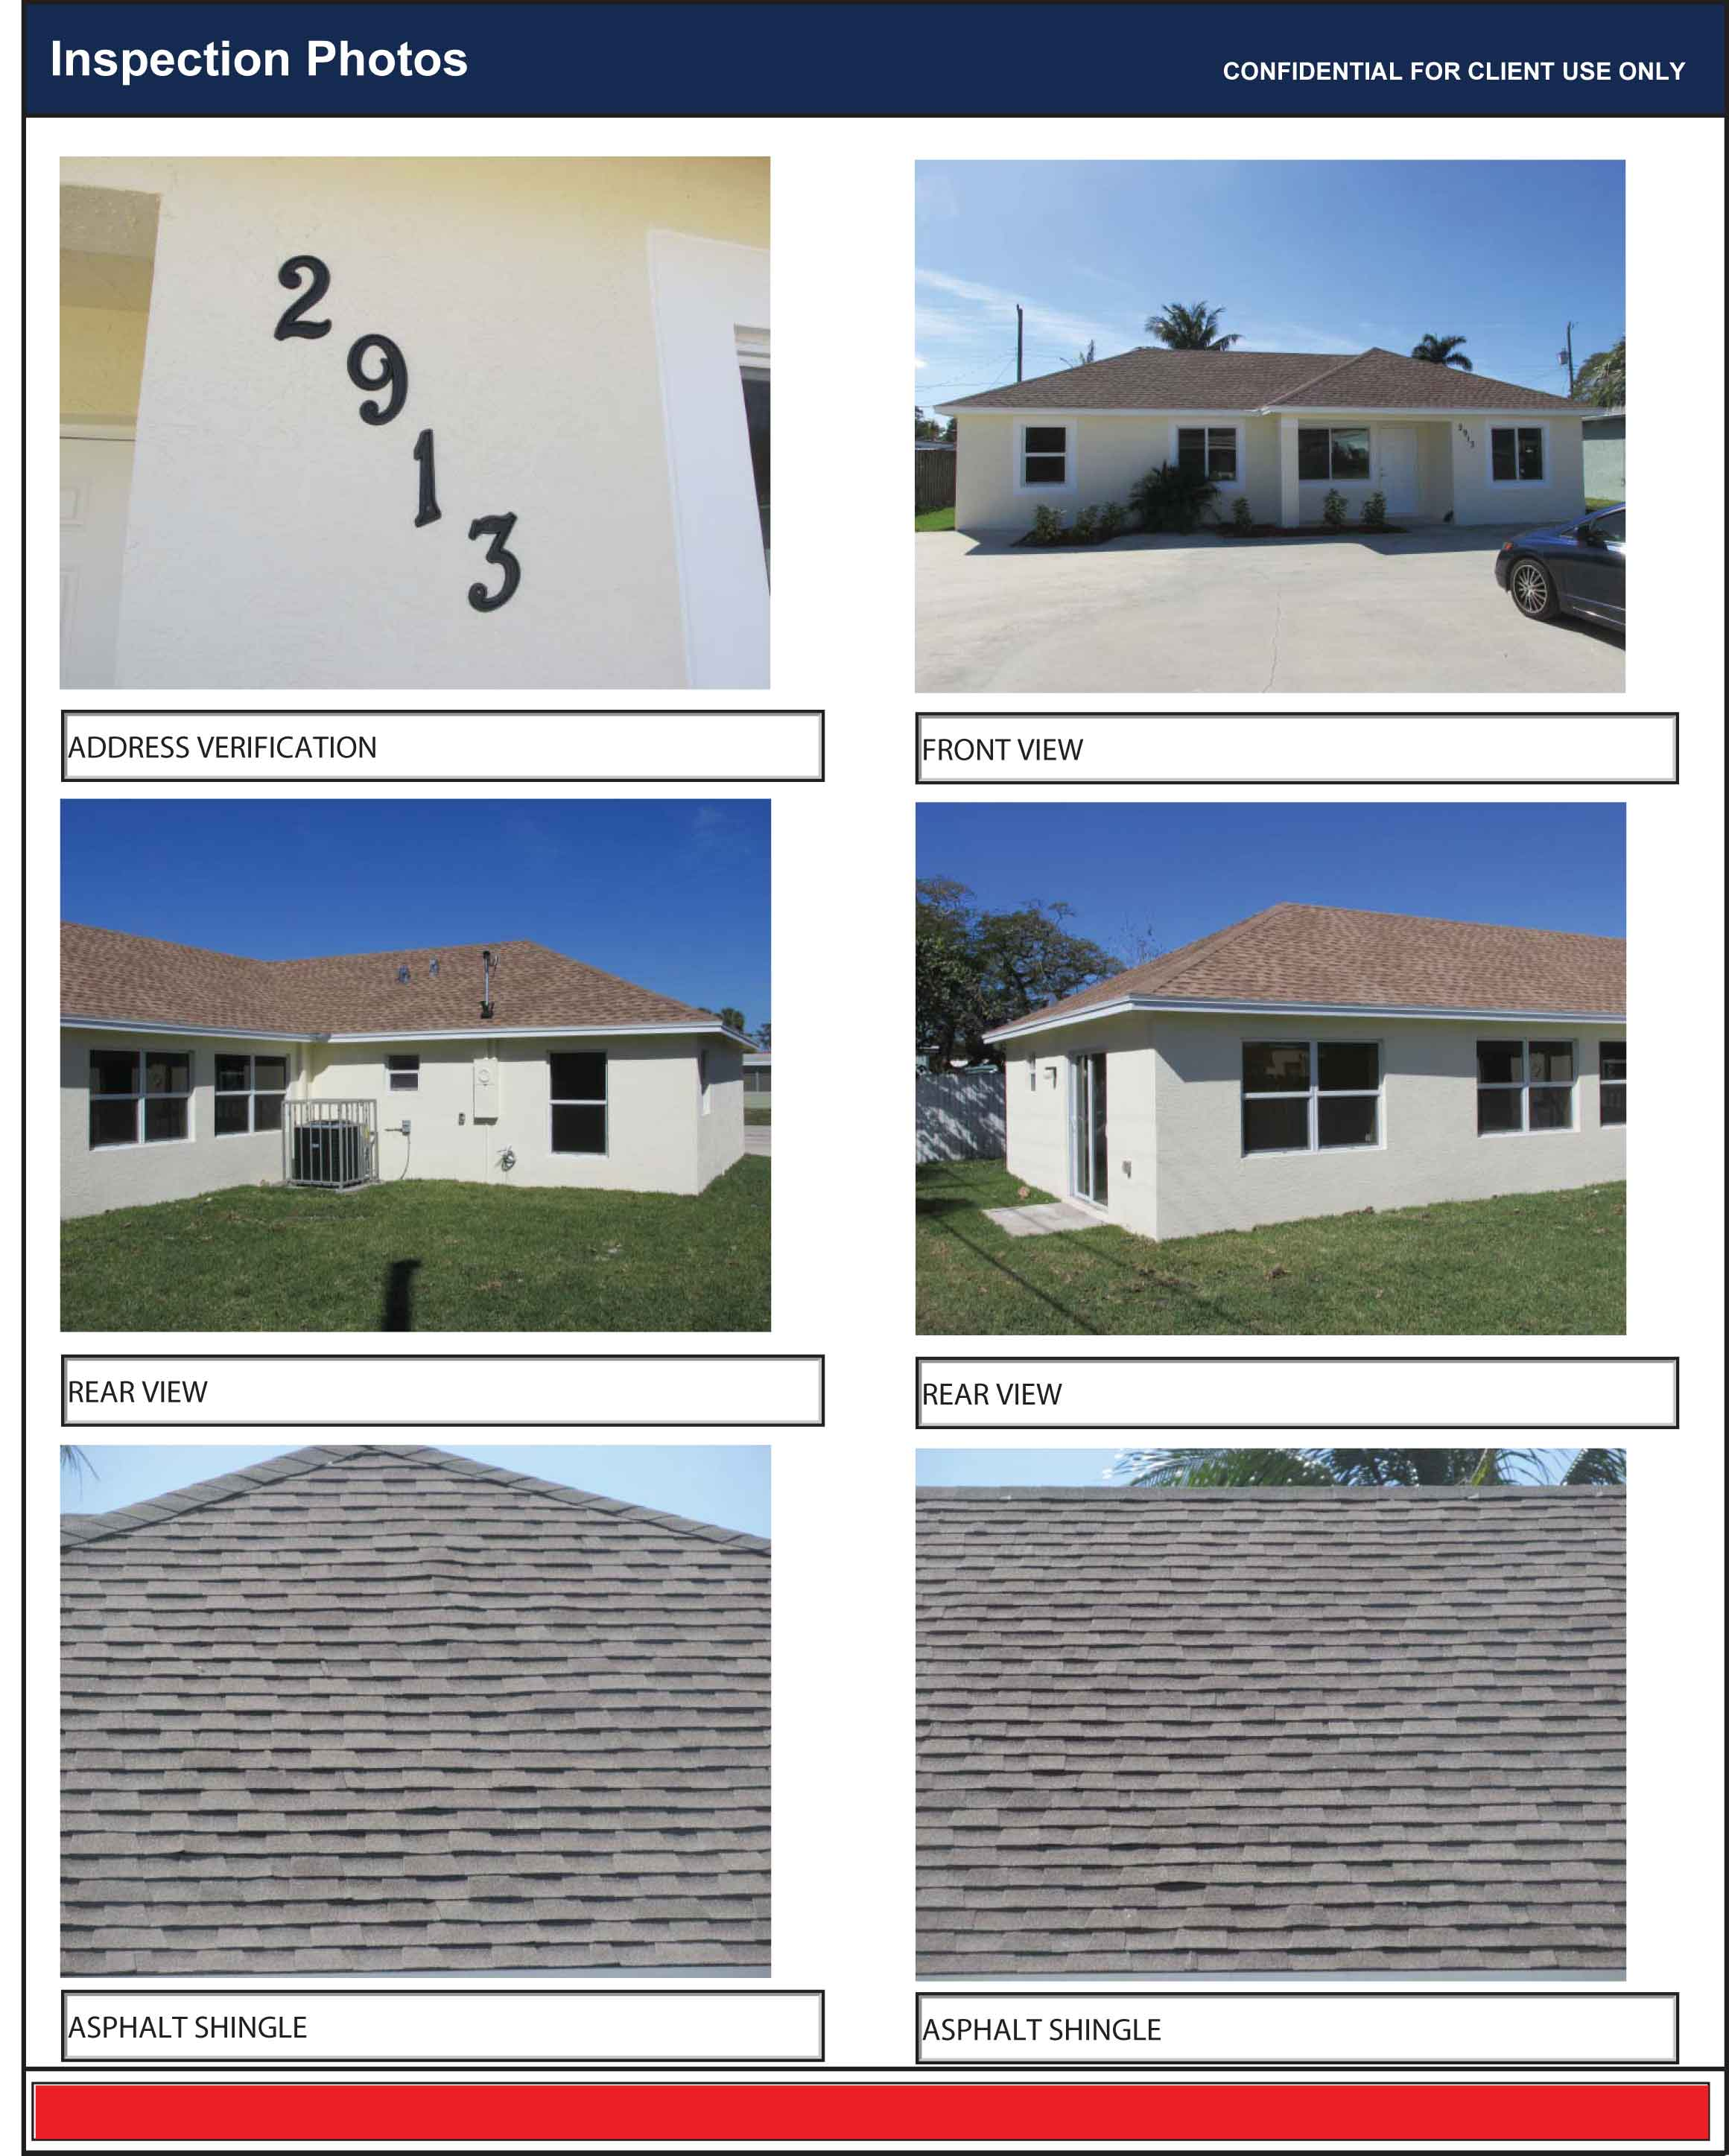 Wind Mitigation Four Point Inspection Roof Certification